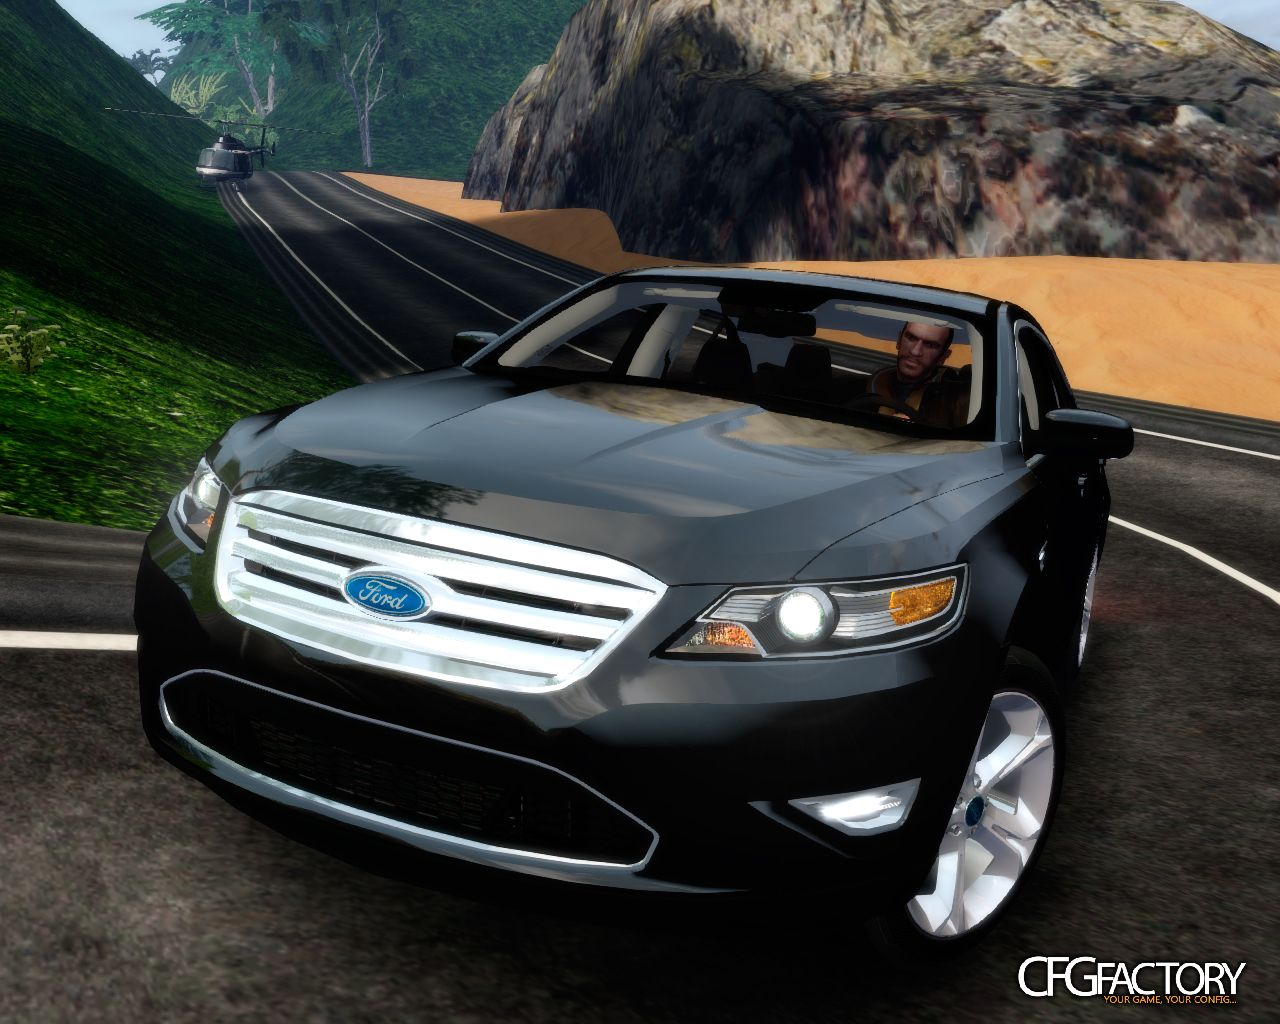 Ford Escape 2008 V4 >> Vehicles - Grand Theft Auto IV - Modification Center - CFGFactory